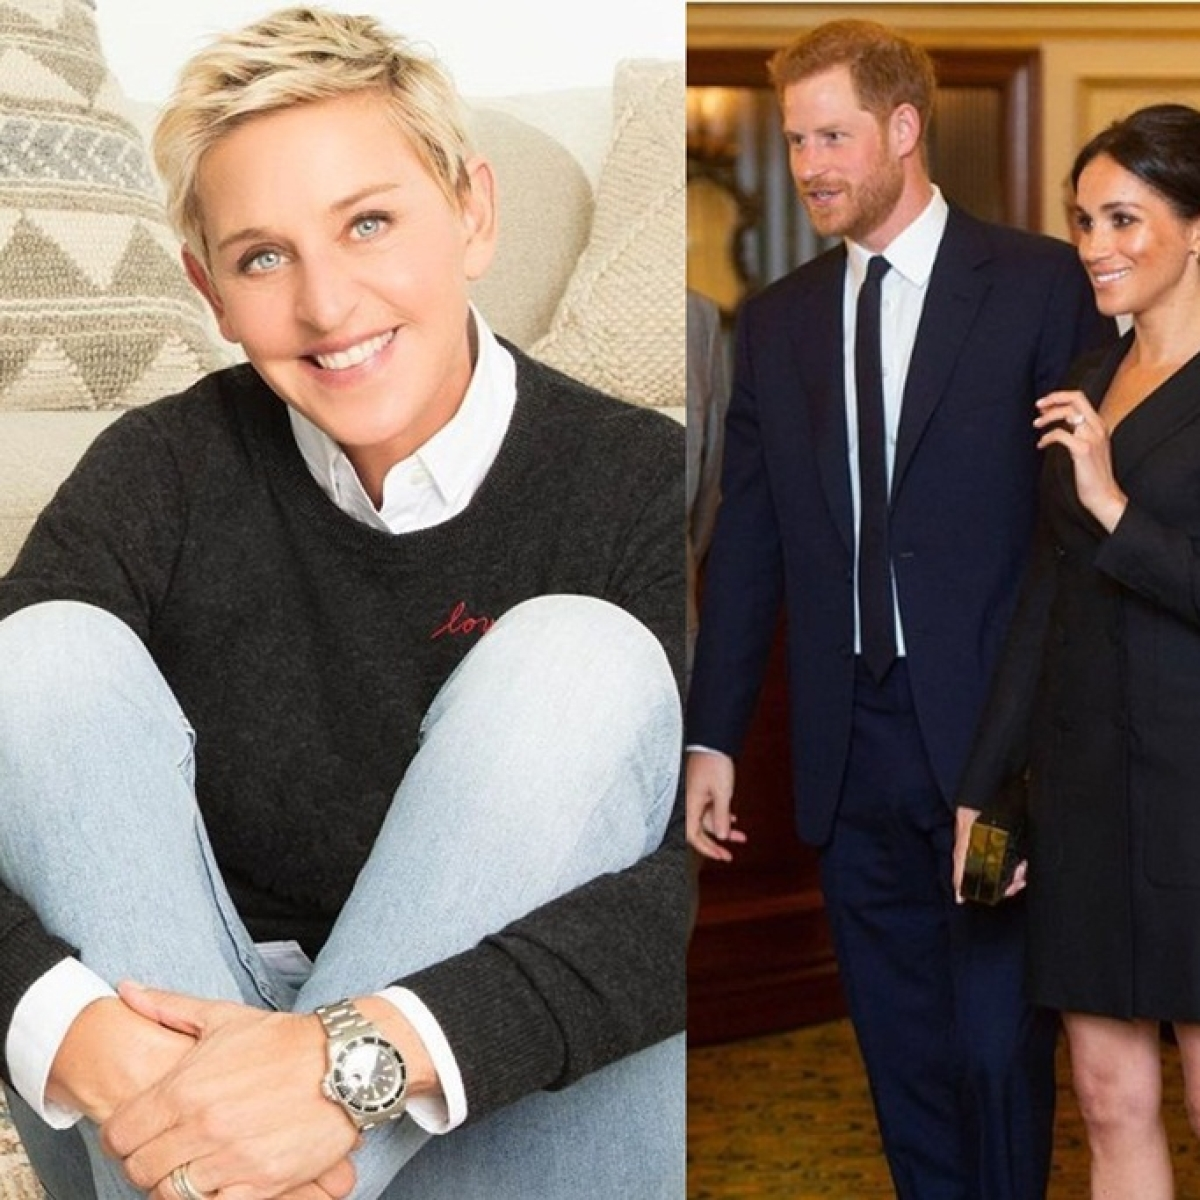 After John Elton, Ellen DeGeneres defends Prince Harry and Meghan Markle amid private jet criticism